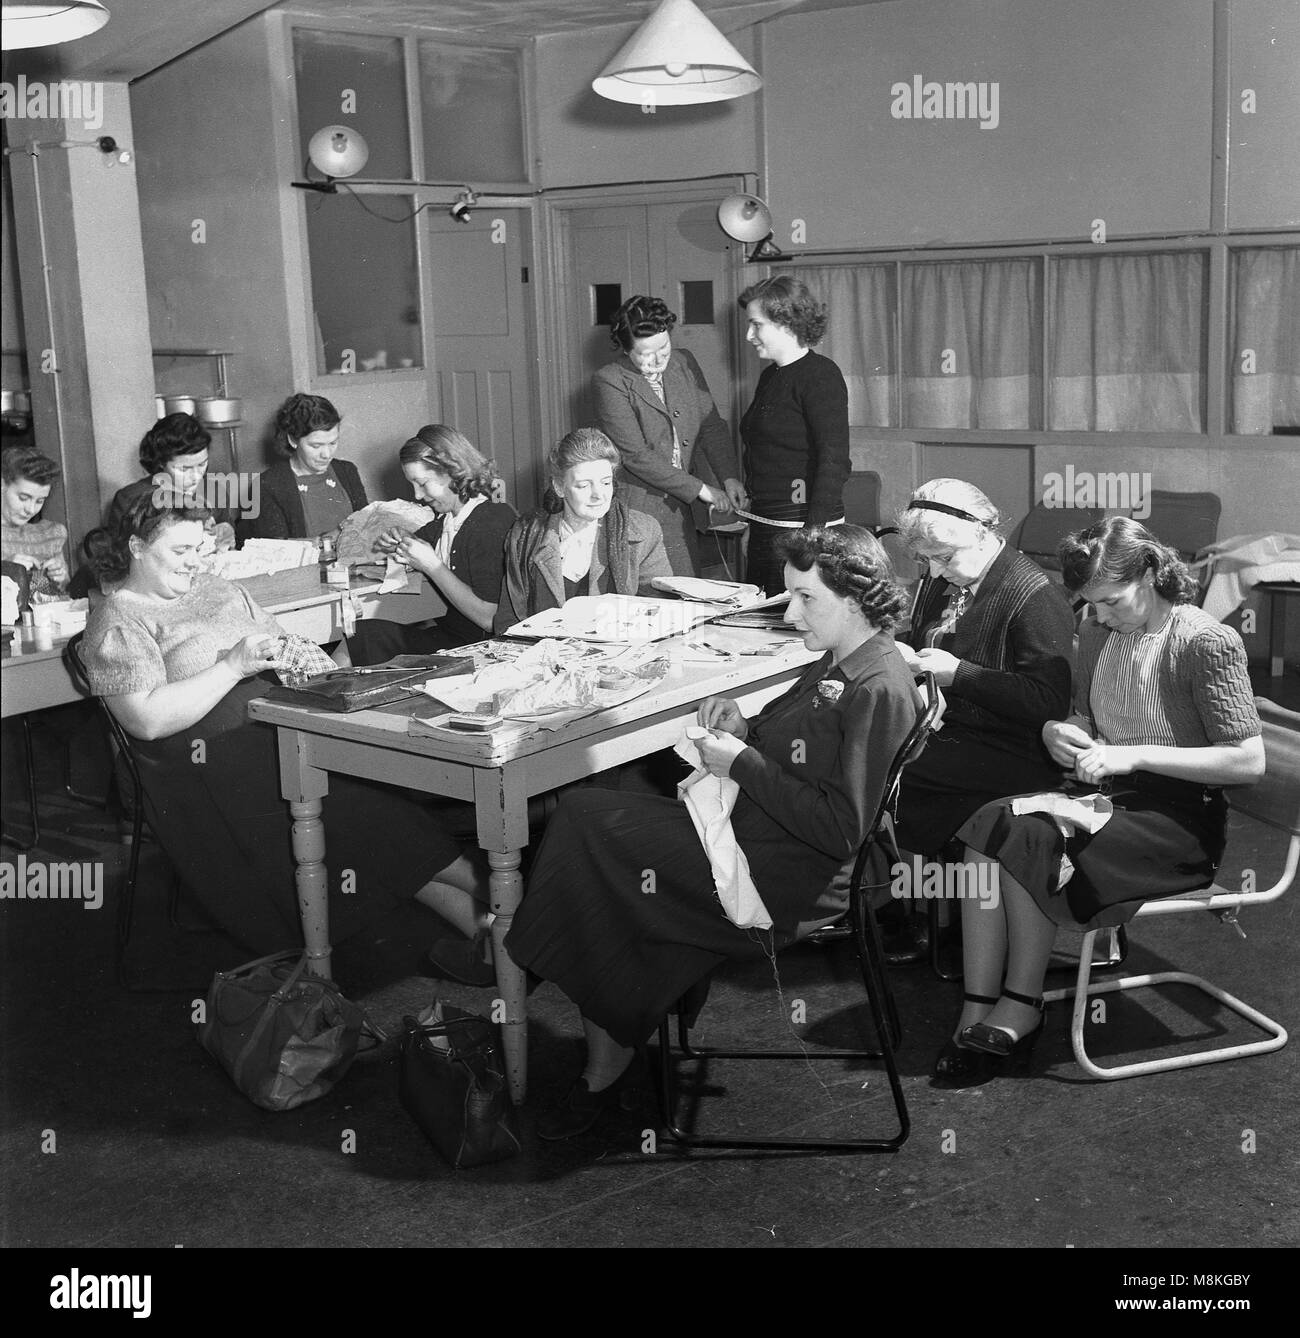 1950s, historical picture of ladies at a sewing or needlework group, England, UK  During and after war, in Britain, - Stock Image